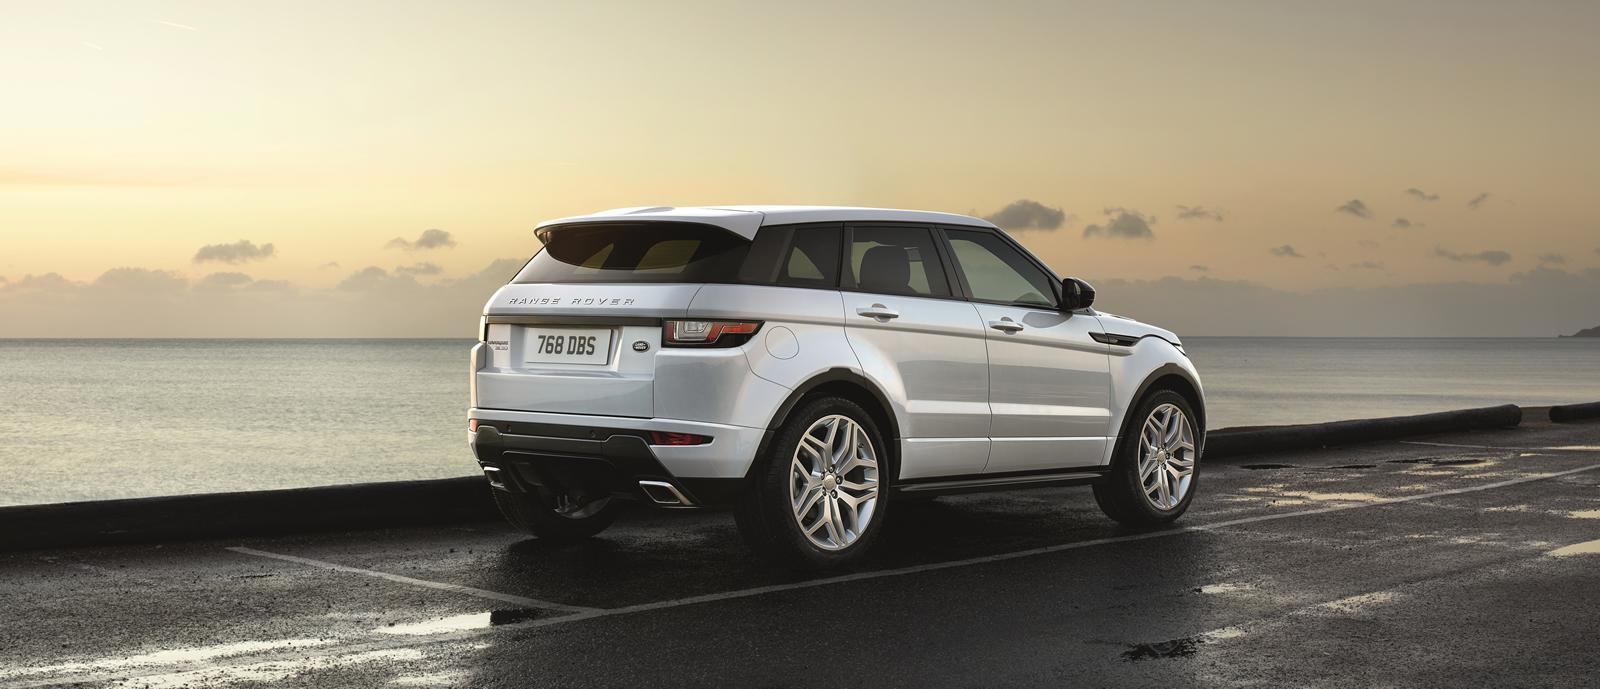 2016 Range Rover Evoque Prices Start from £30,200 in the ...